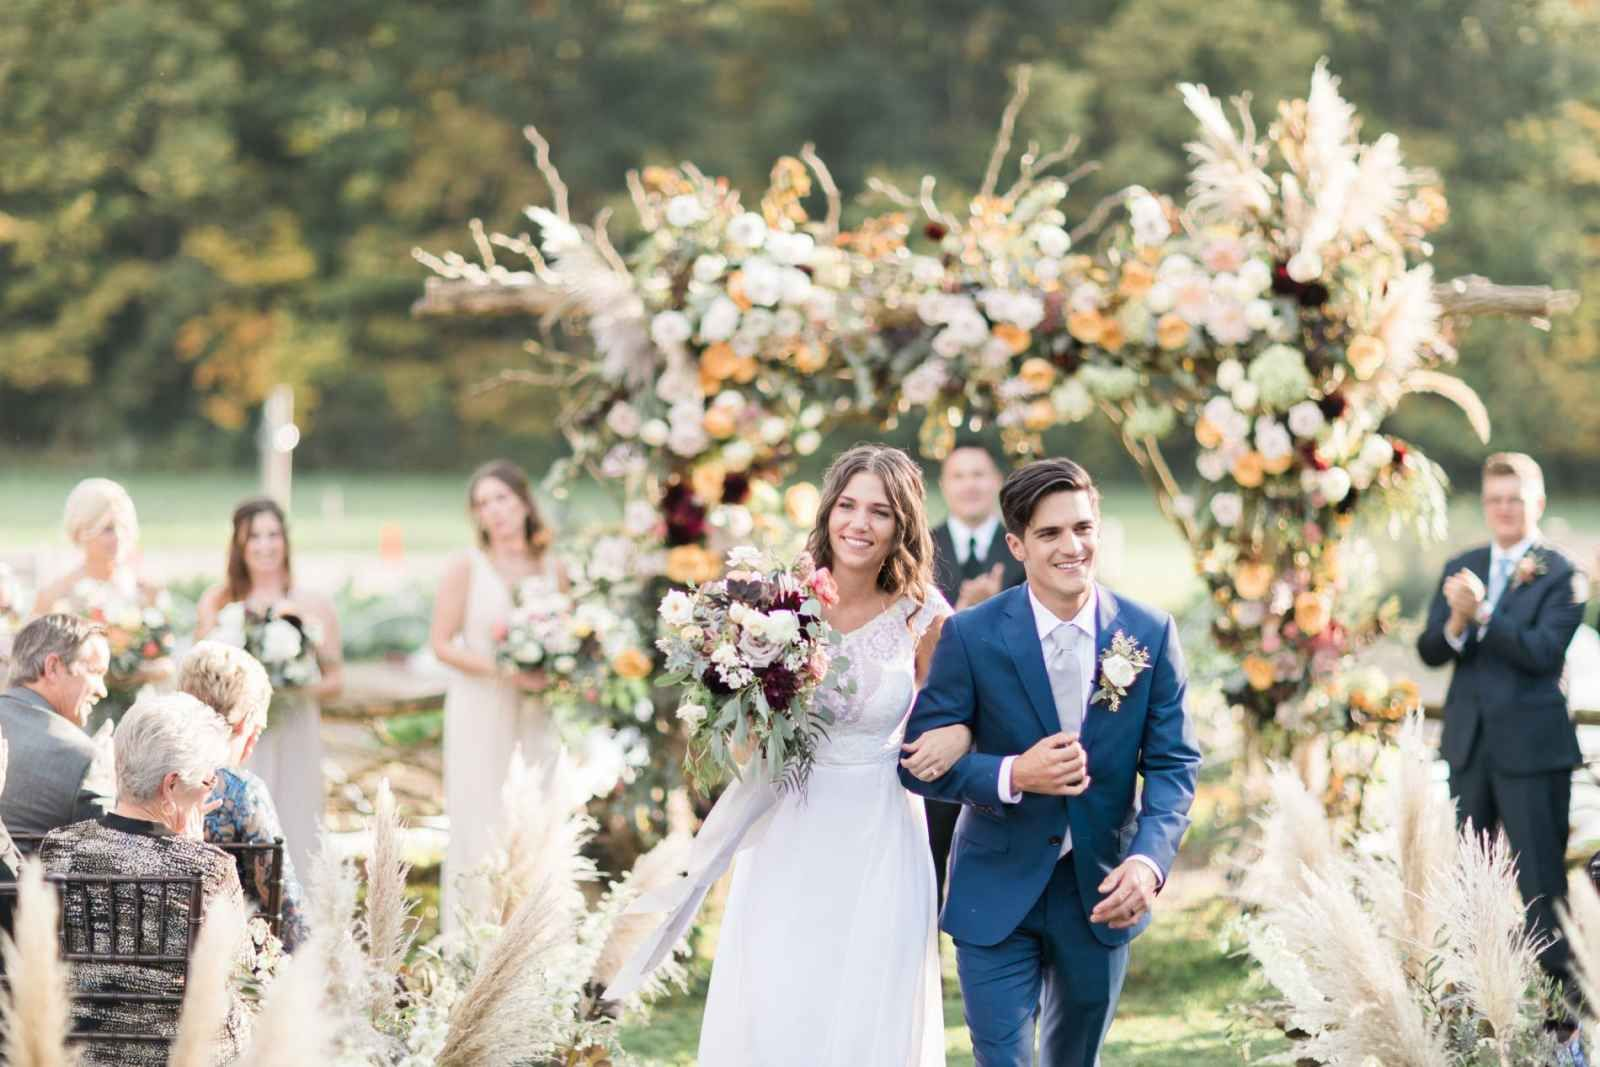 Whimsical outdoor barn wedding in Indianapolis - The ...